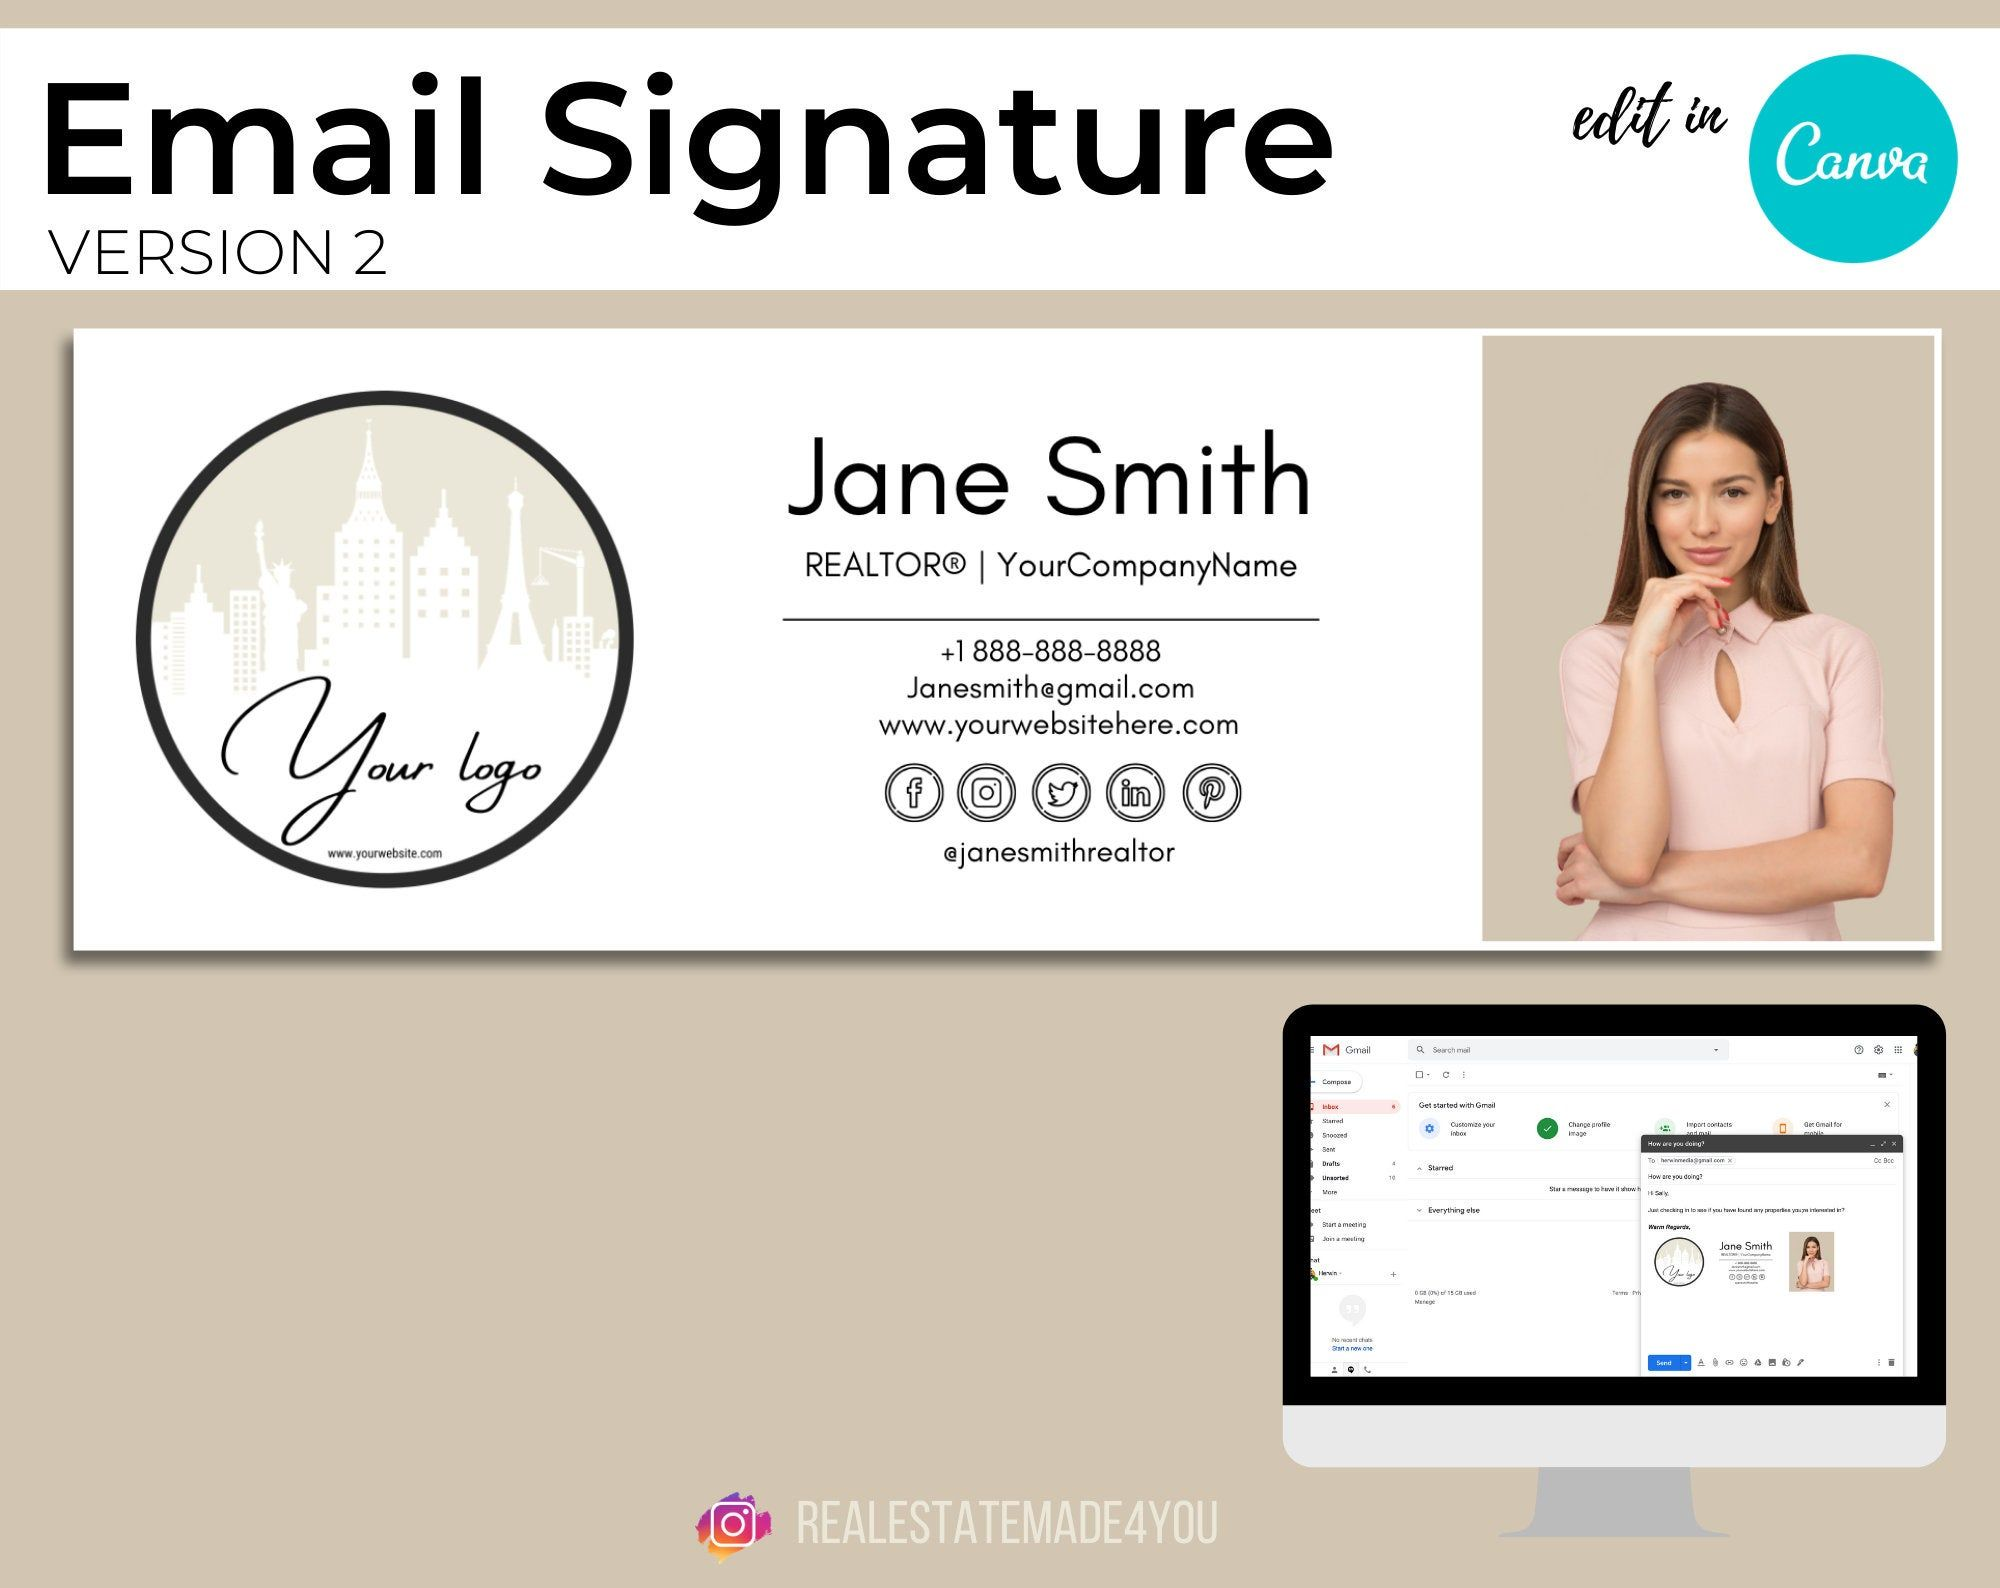 Email Signature V2 Editable In Canva Custom Gmail Signature Etsy In 2021 Real Estate Marketing Html Email Signature Marketing Template